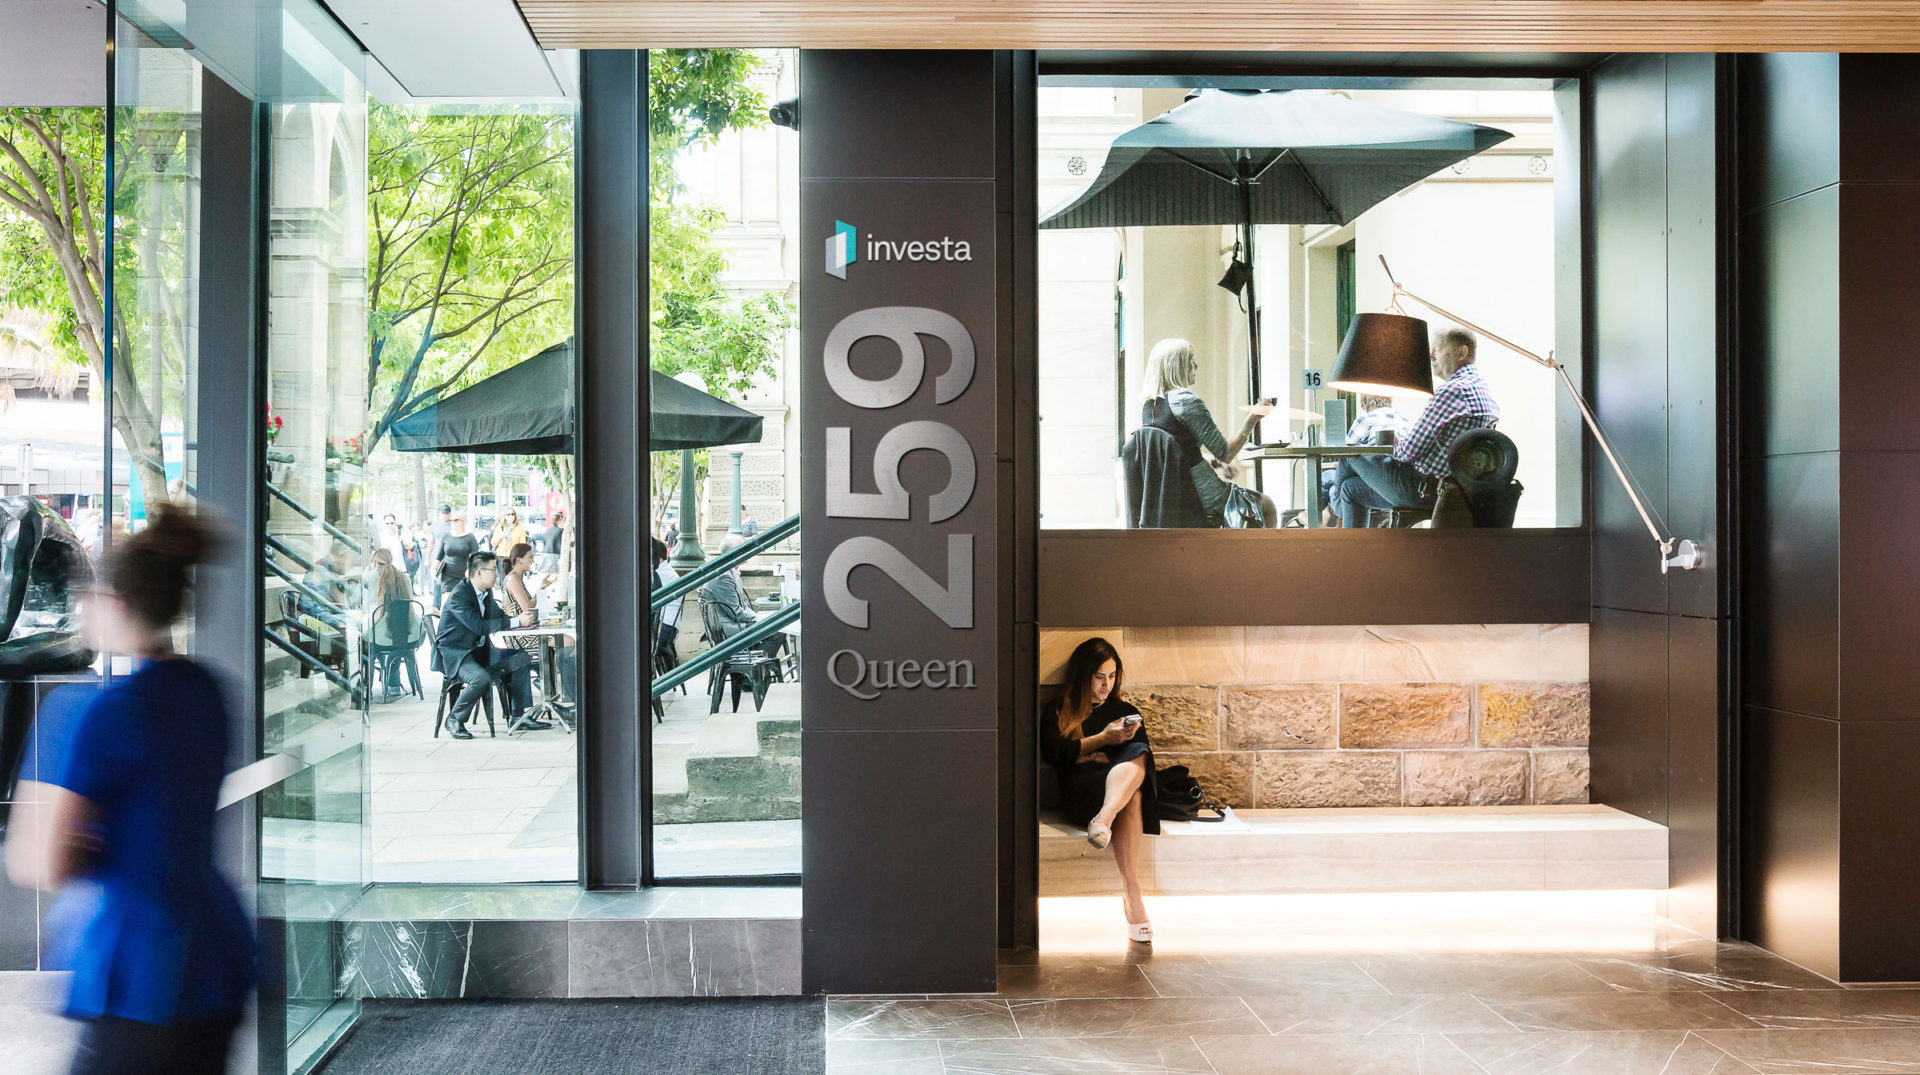 Image of signage and entryway at the 259 Queen Street office